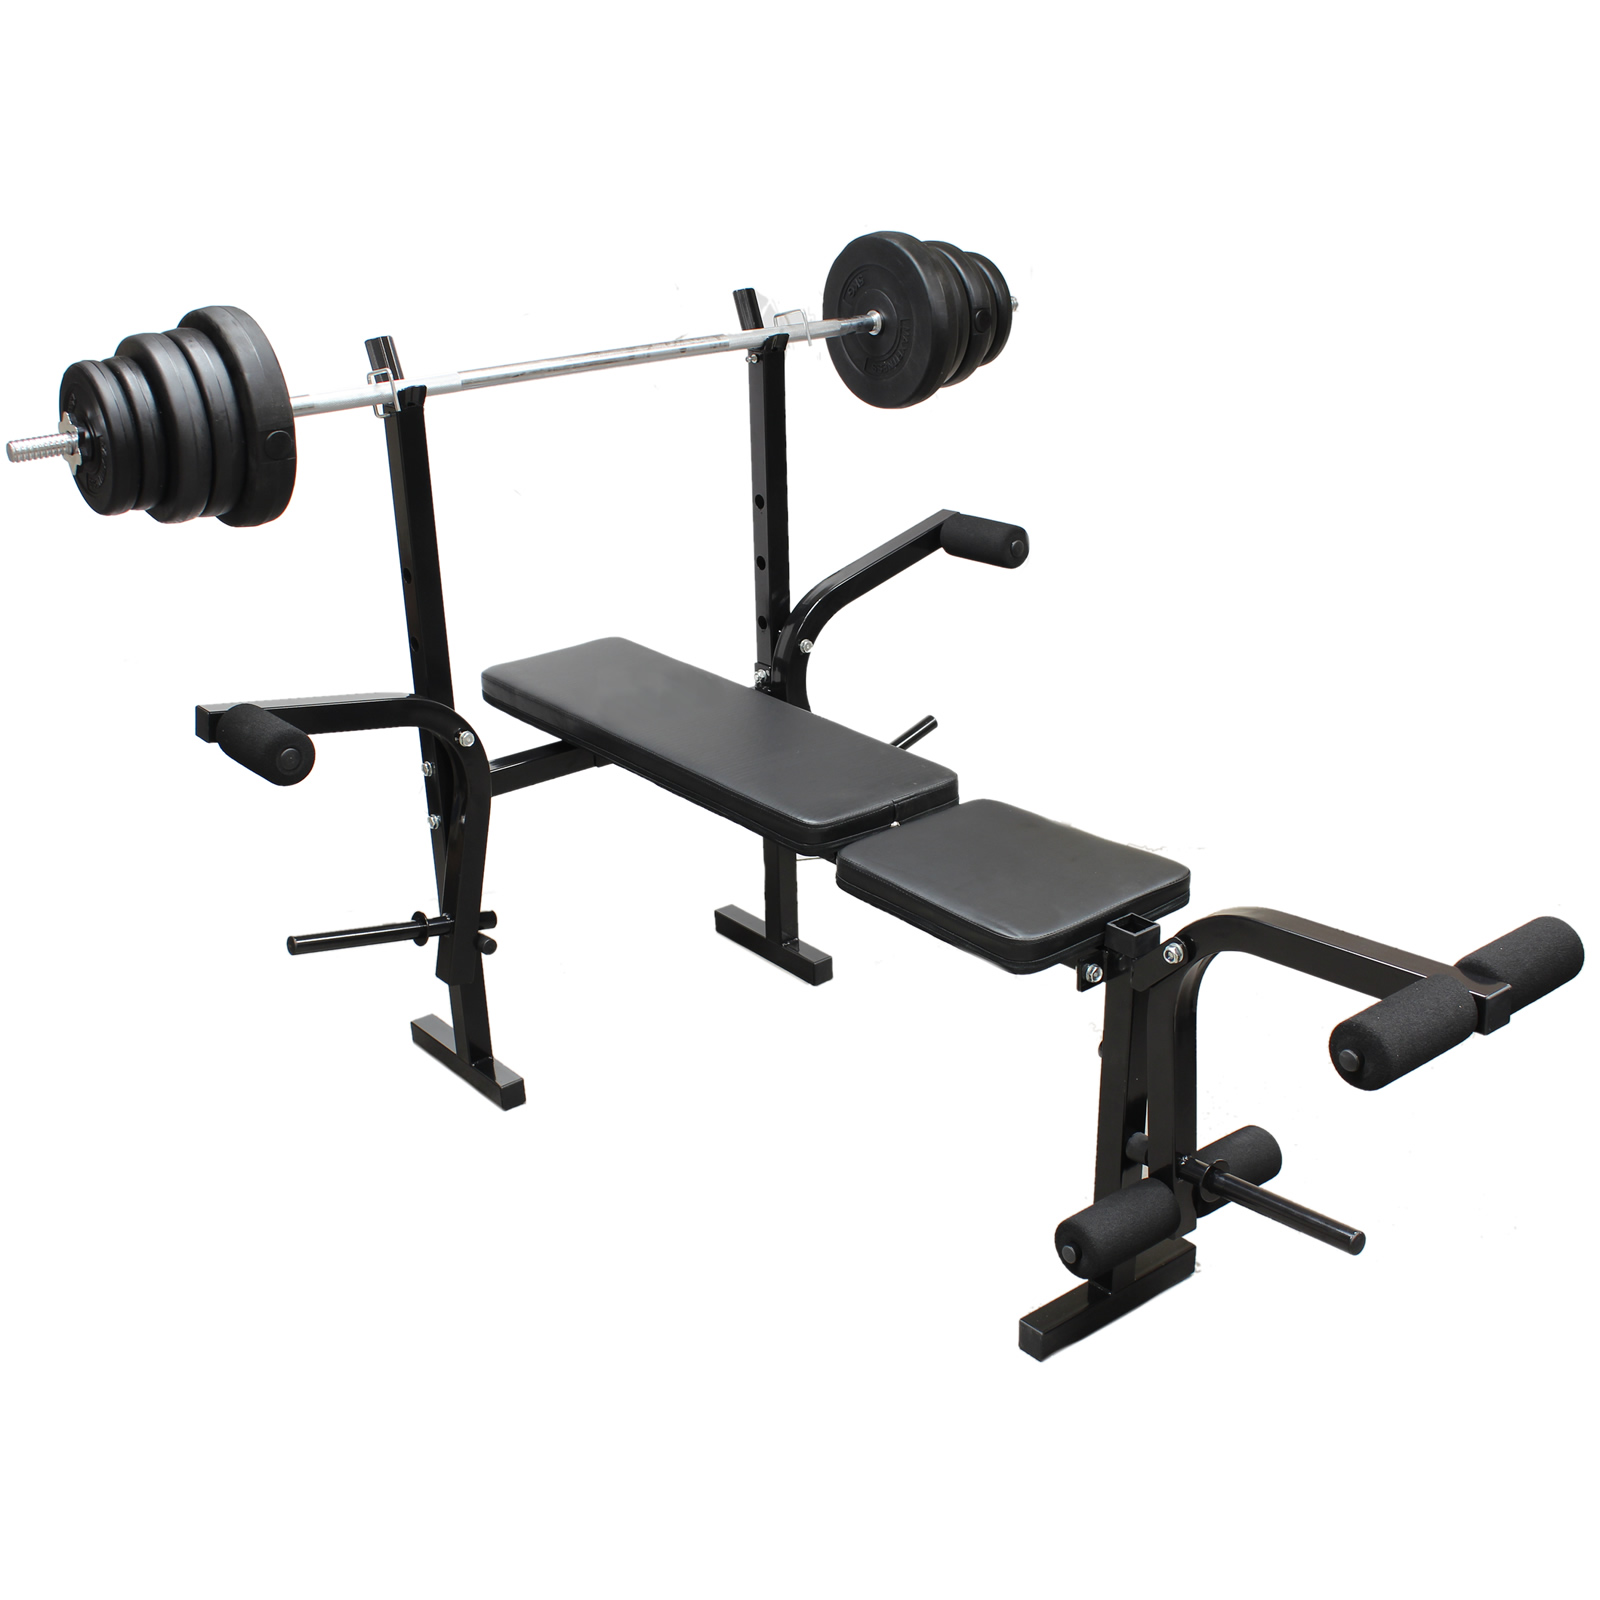 SALE WEIGHTS BENCH MULTI HOME GYM EQUIPMENT DUMBELL WORKOUT ABS - Home gym equipment for sale